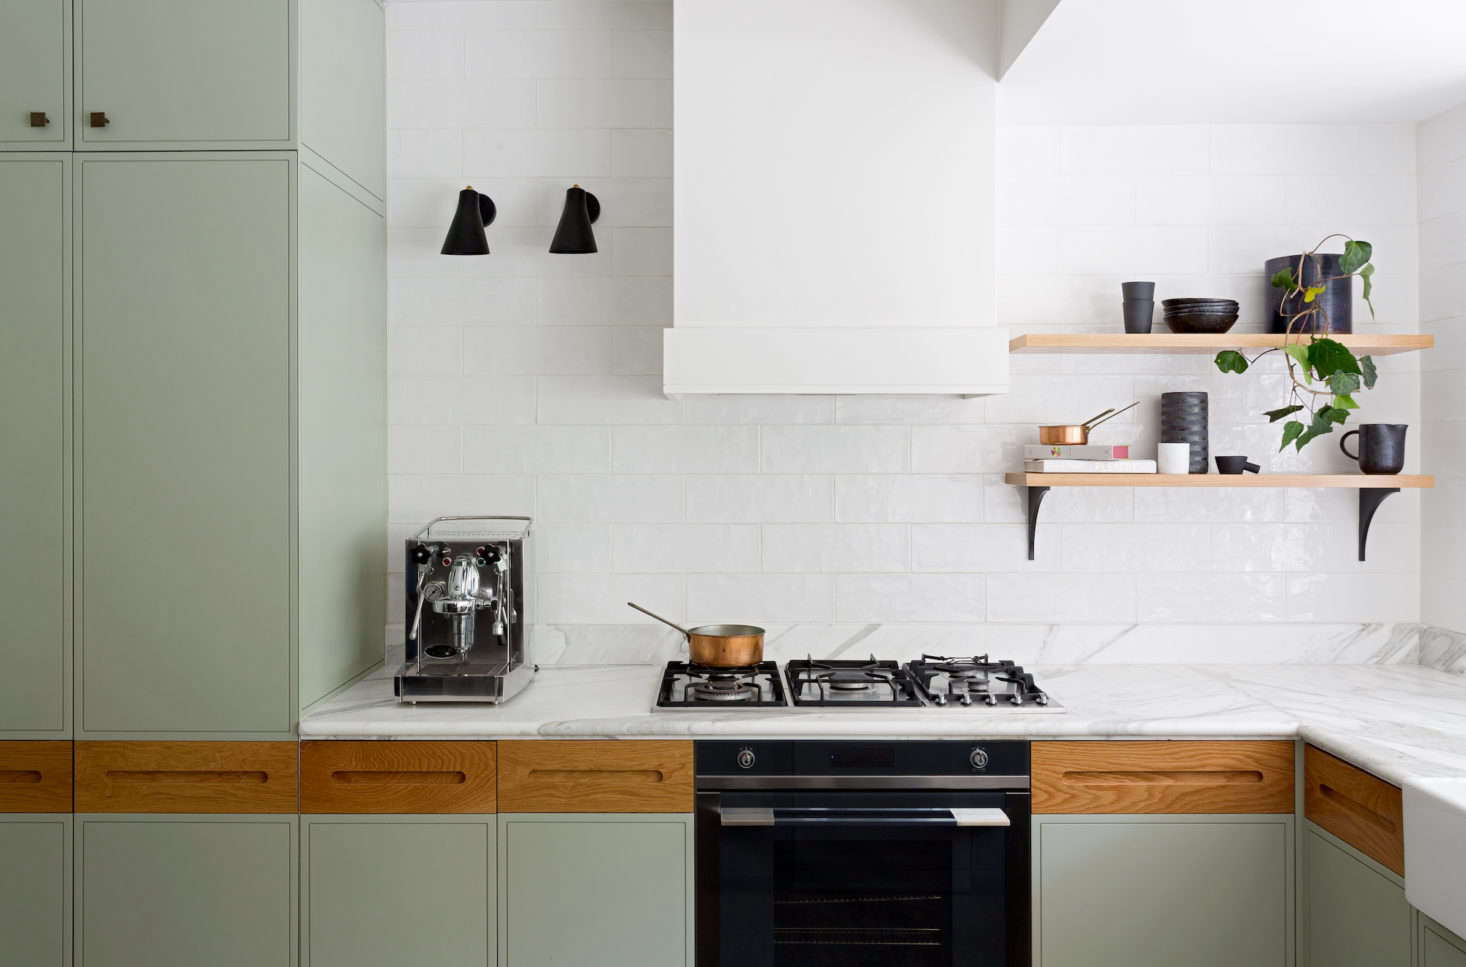 Marble counters in a kitchen designed by Sydney-based interior designers Juliette Arent and Sarah-Jane Pyke. Photograph fromKitchen of the Week: A Before/After Remodel in Sydney, Australia.